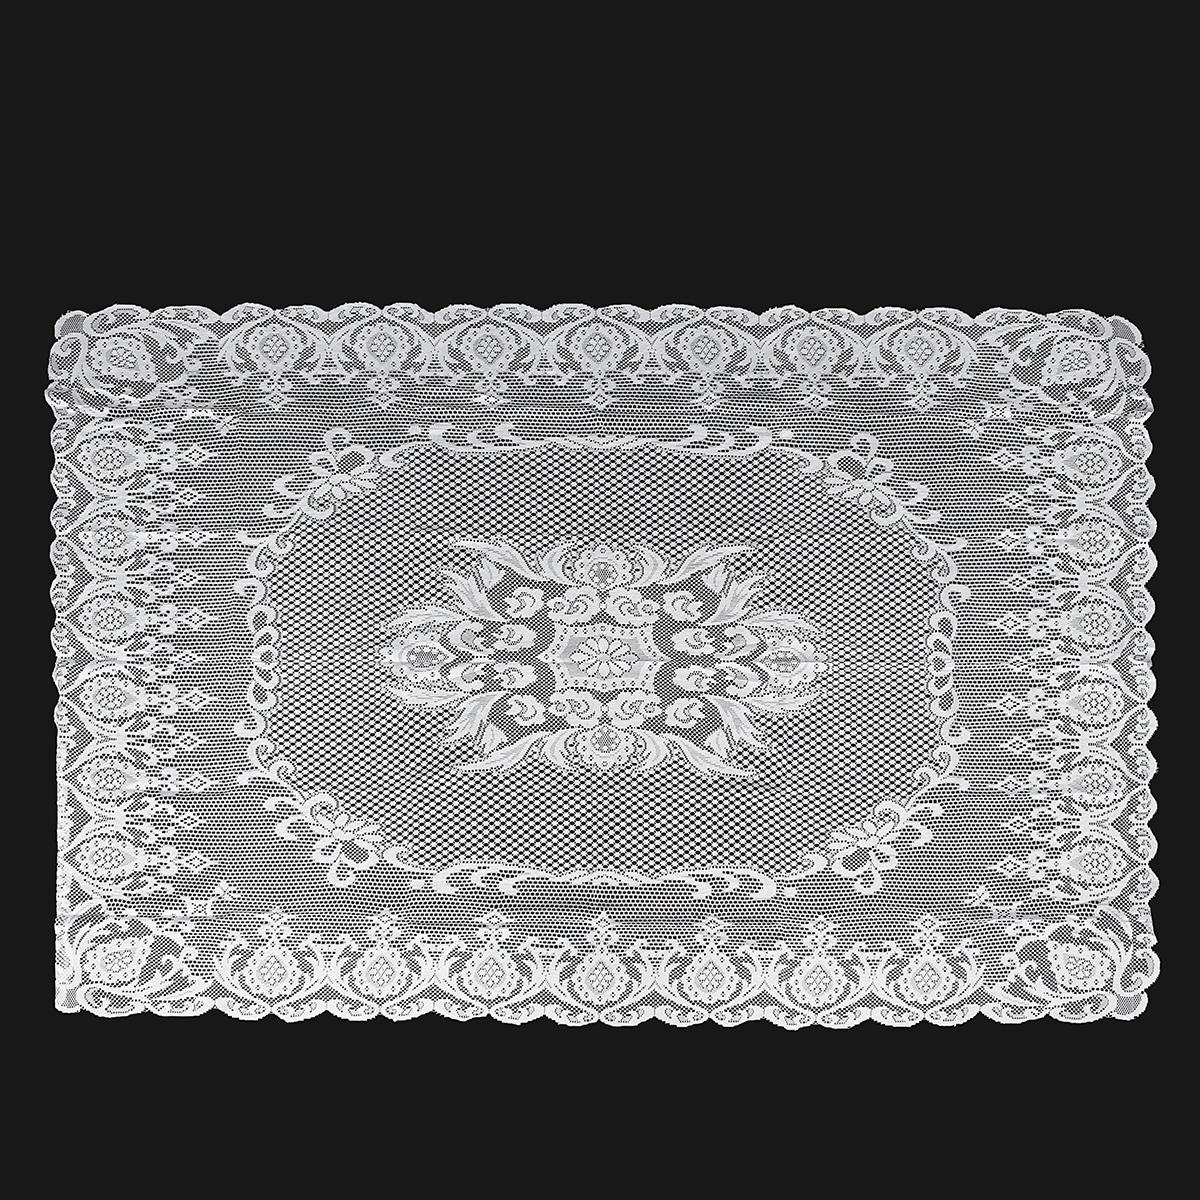 Lace Tablecloth White Vintage Large Table Cloth Cover Wedding Party Decor 1.4 x 2m